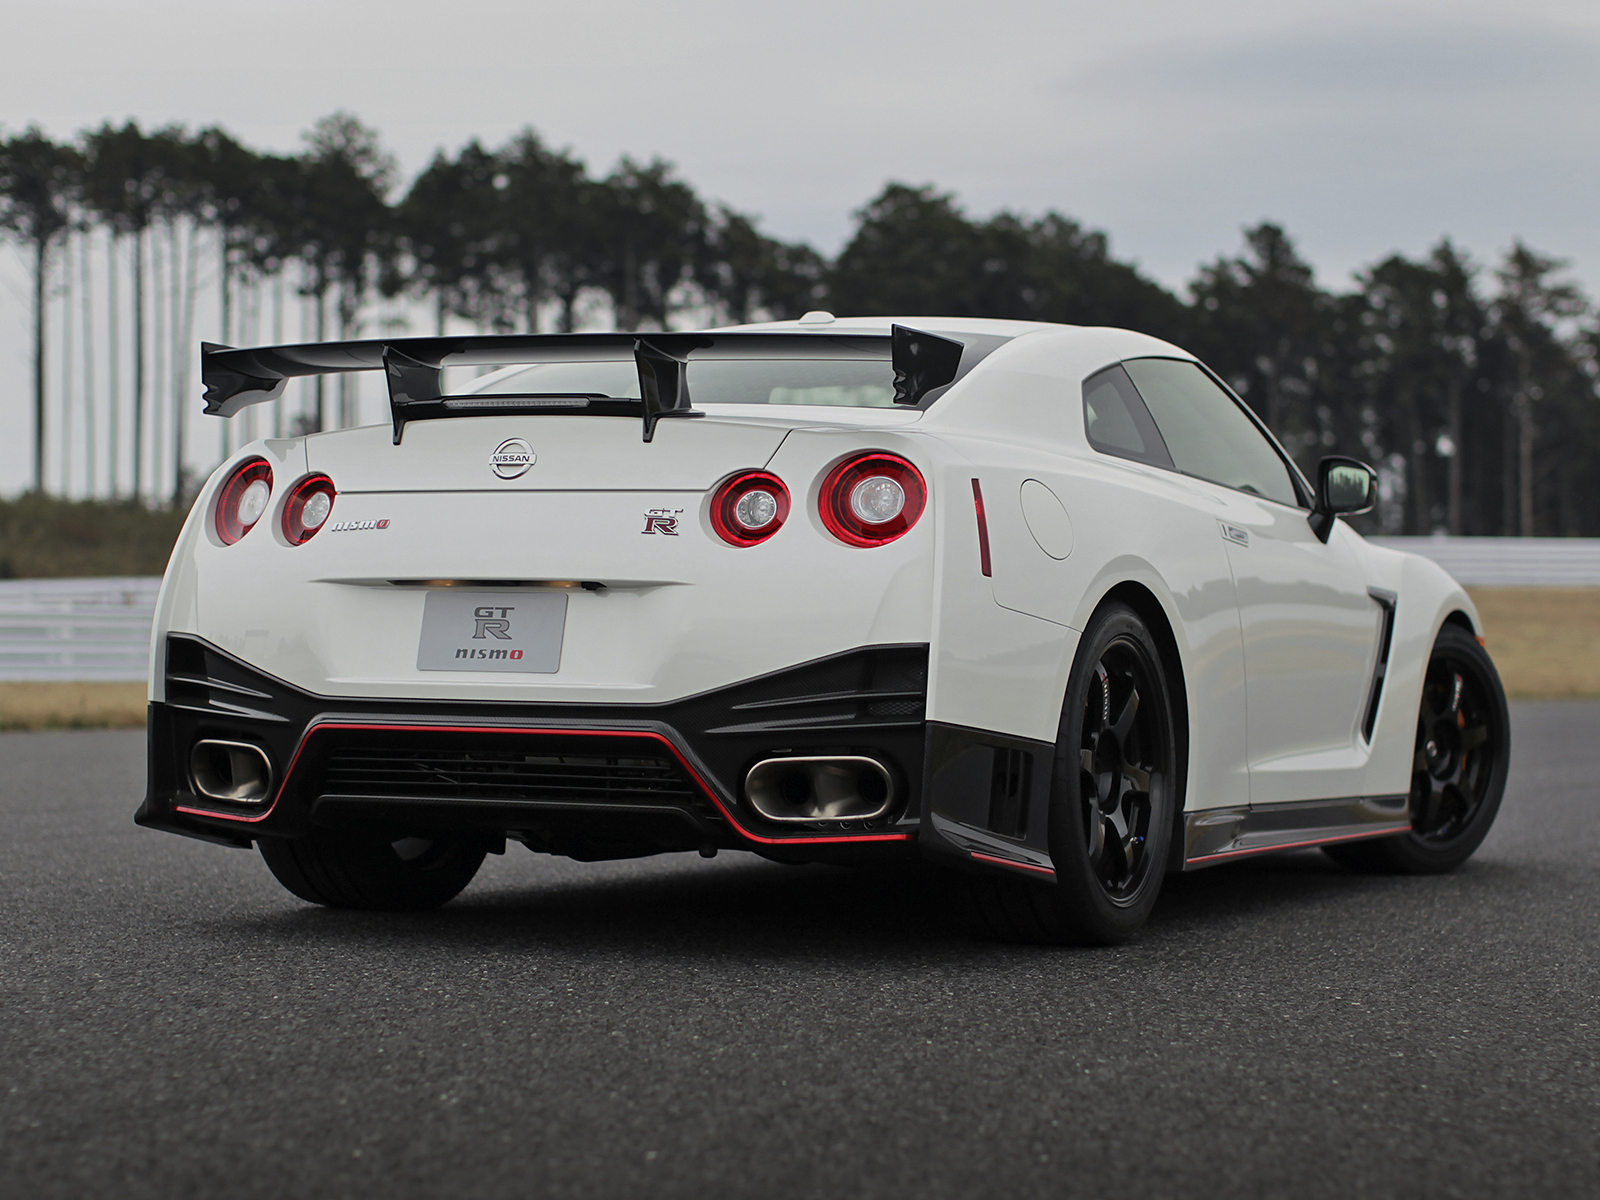 nissan skyline gtr r35 2014 images. Black Bedroom Furniture Sets. Home Design Ideas